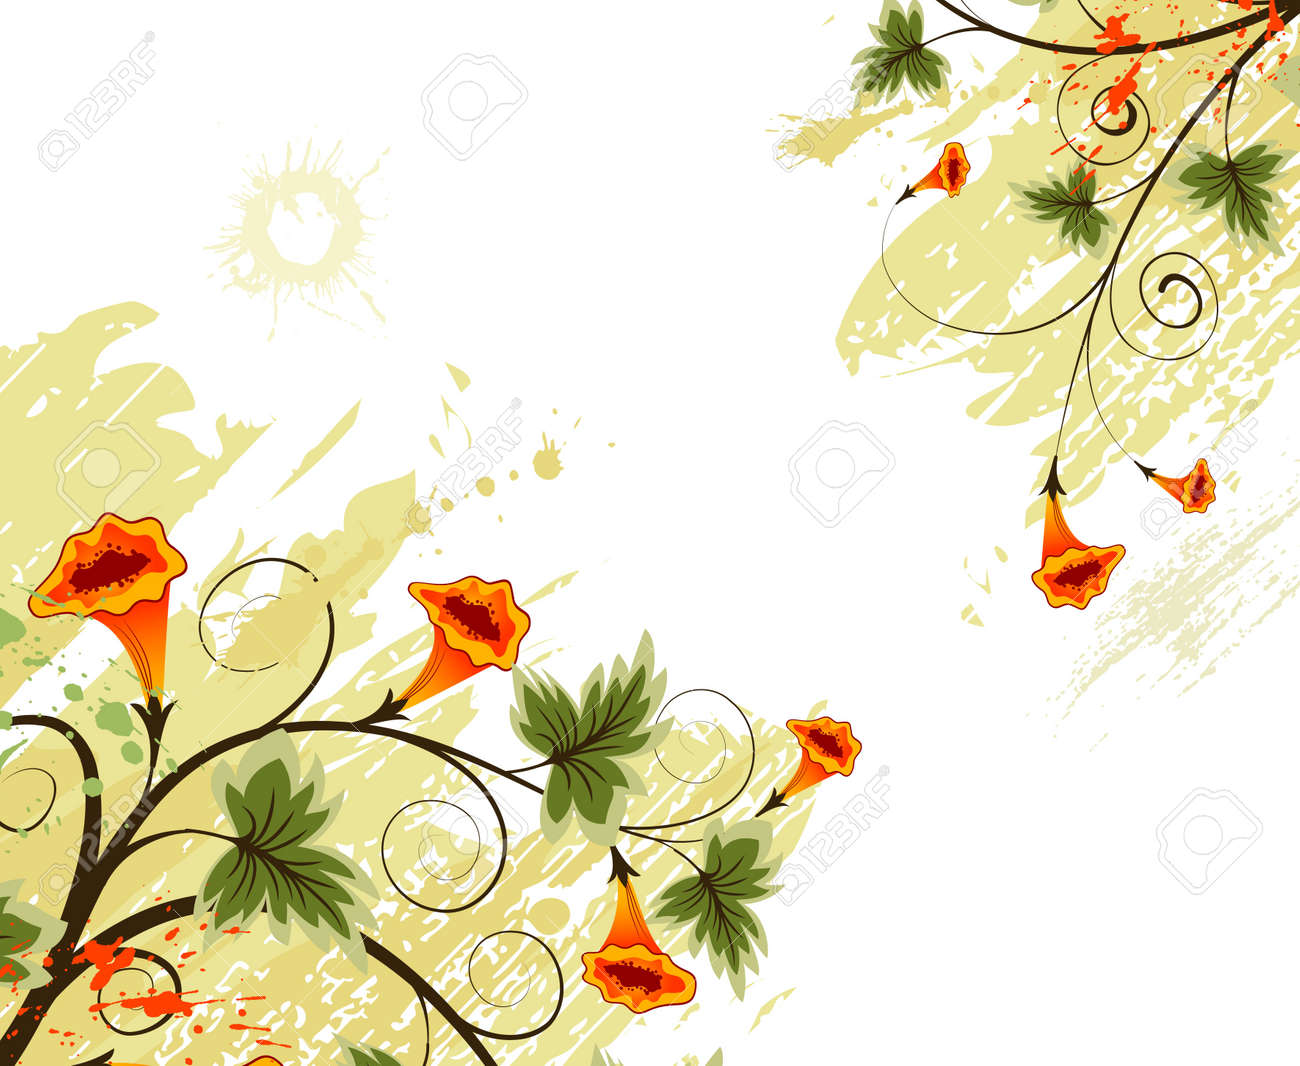 Grunge paint flower background, element for design, vector illustration Stock Illustration - 1319564